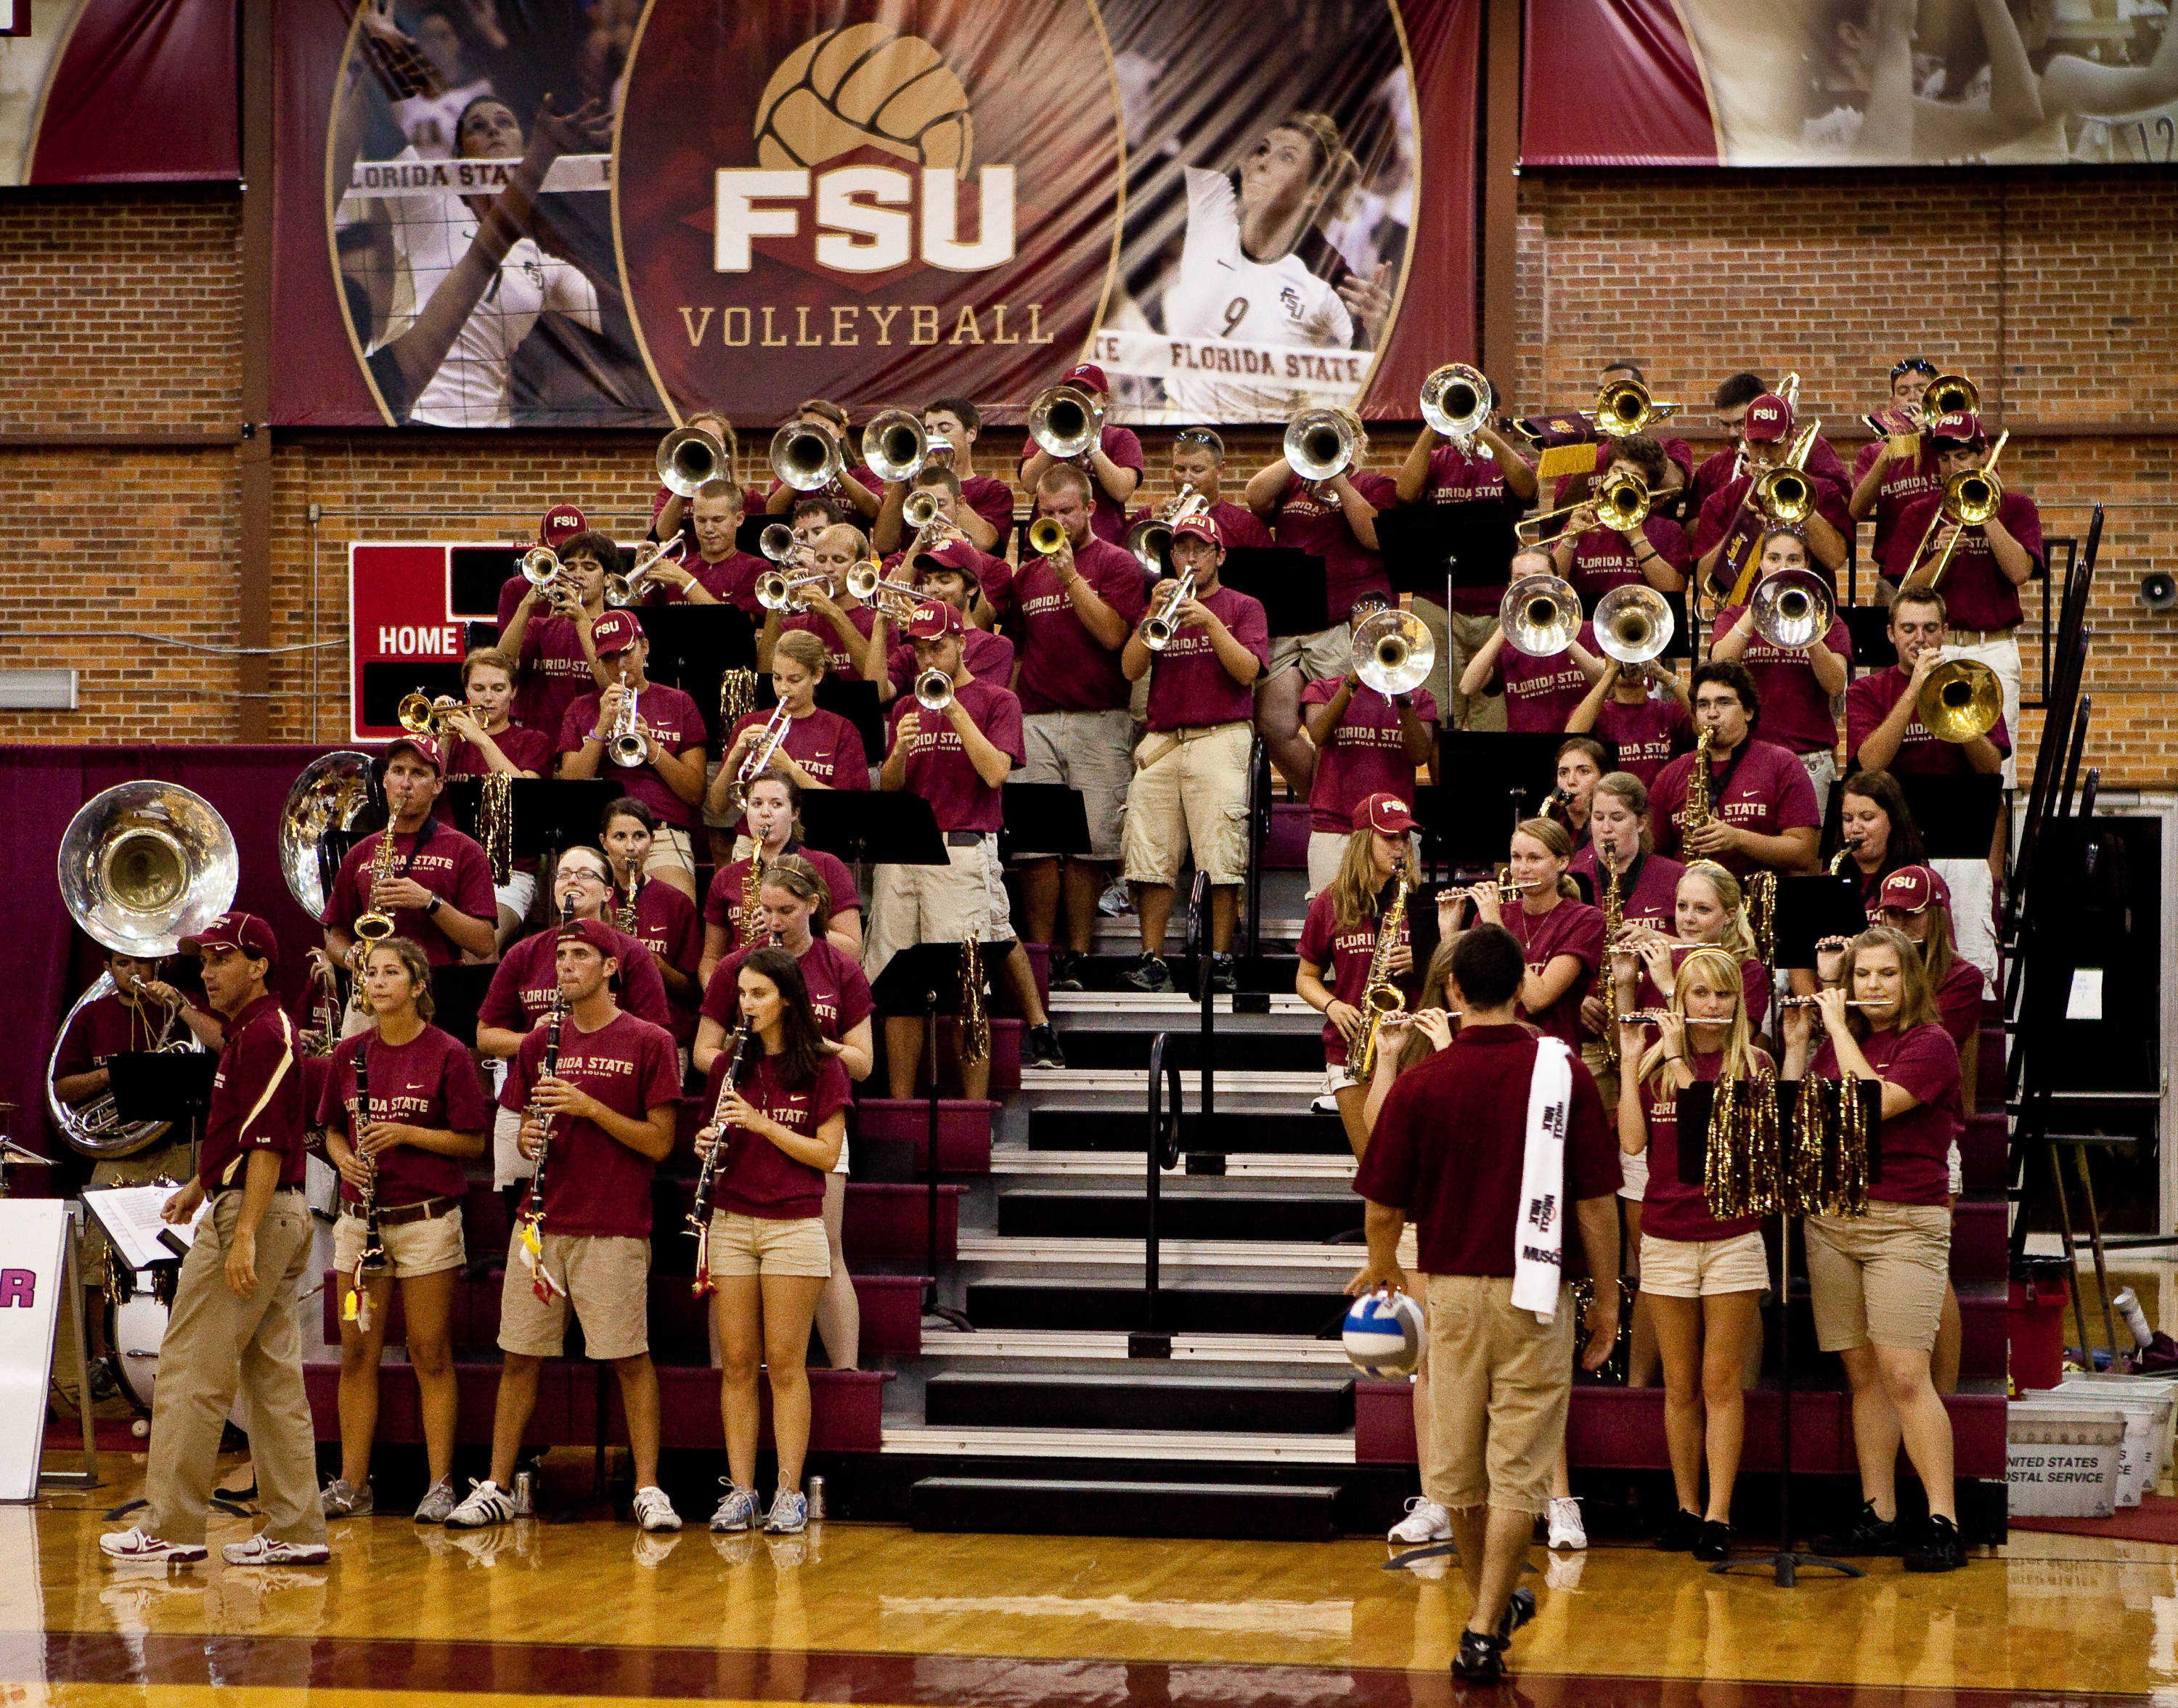 Seminole Sounds at work